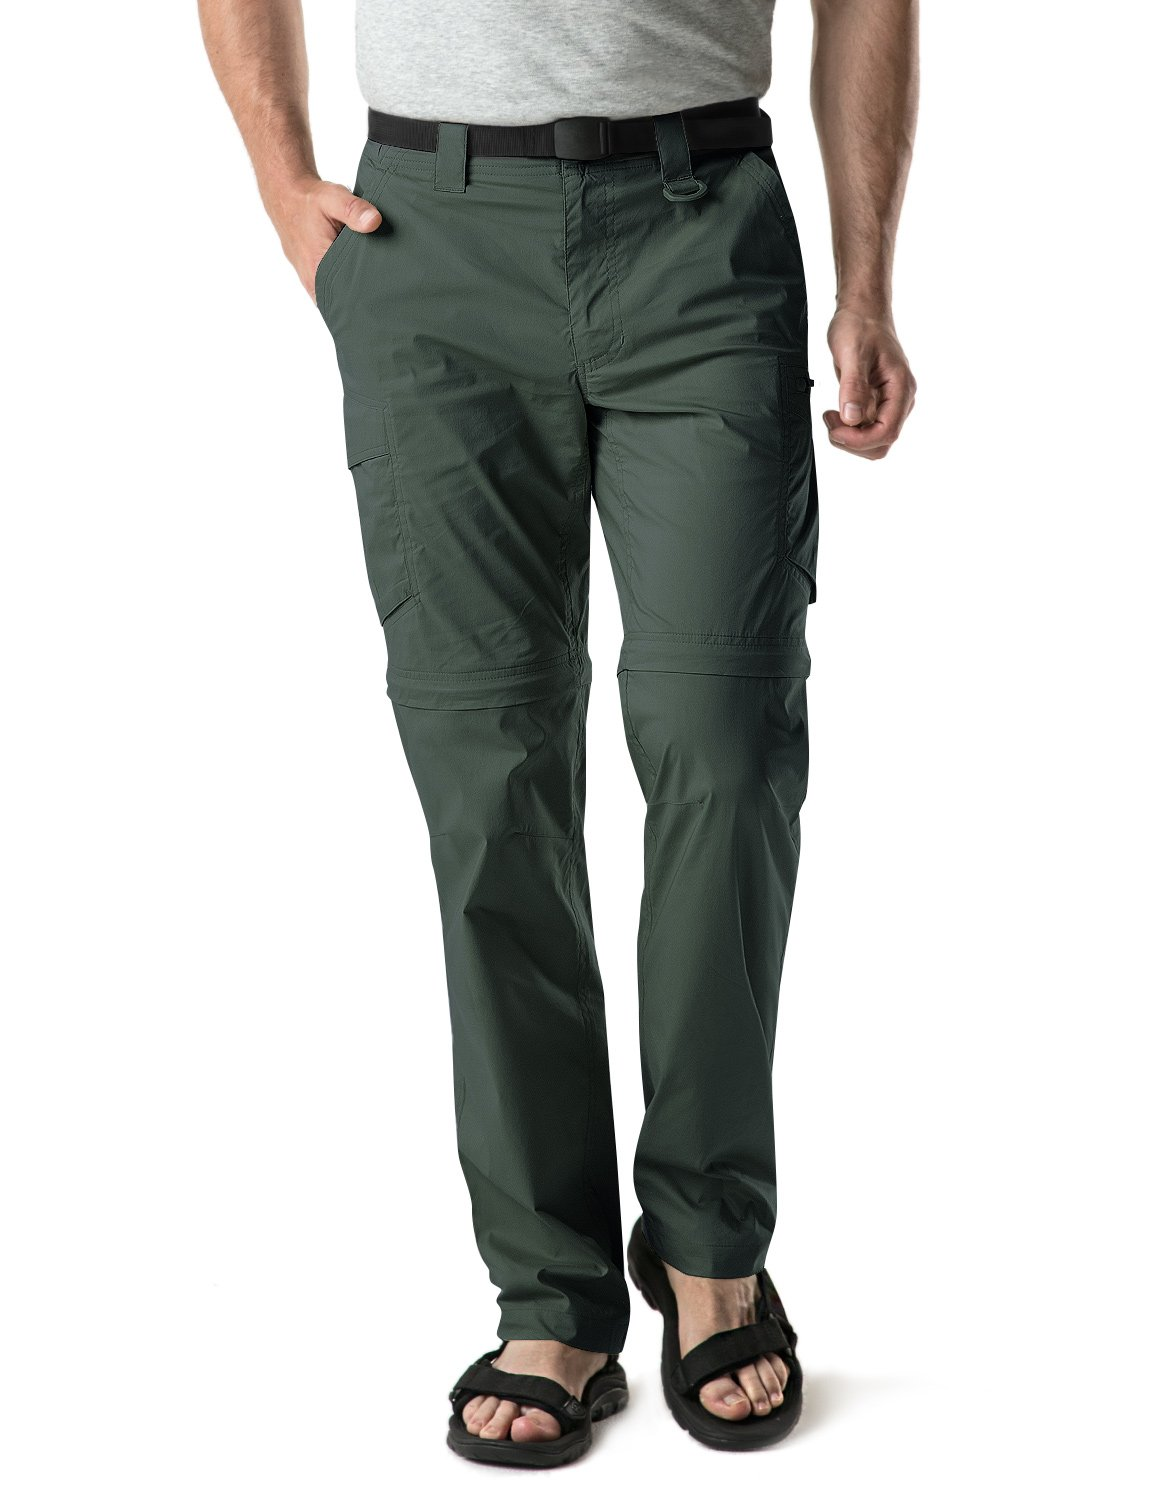 CQR CQ-TXP402-GRN_32W/30L Men's Convertible Pants Zipp Off Stretch Durable UPF 50+ Quick Dry Cargo Shorts Trousers TXP402